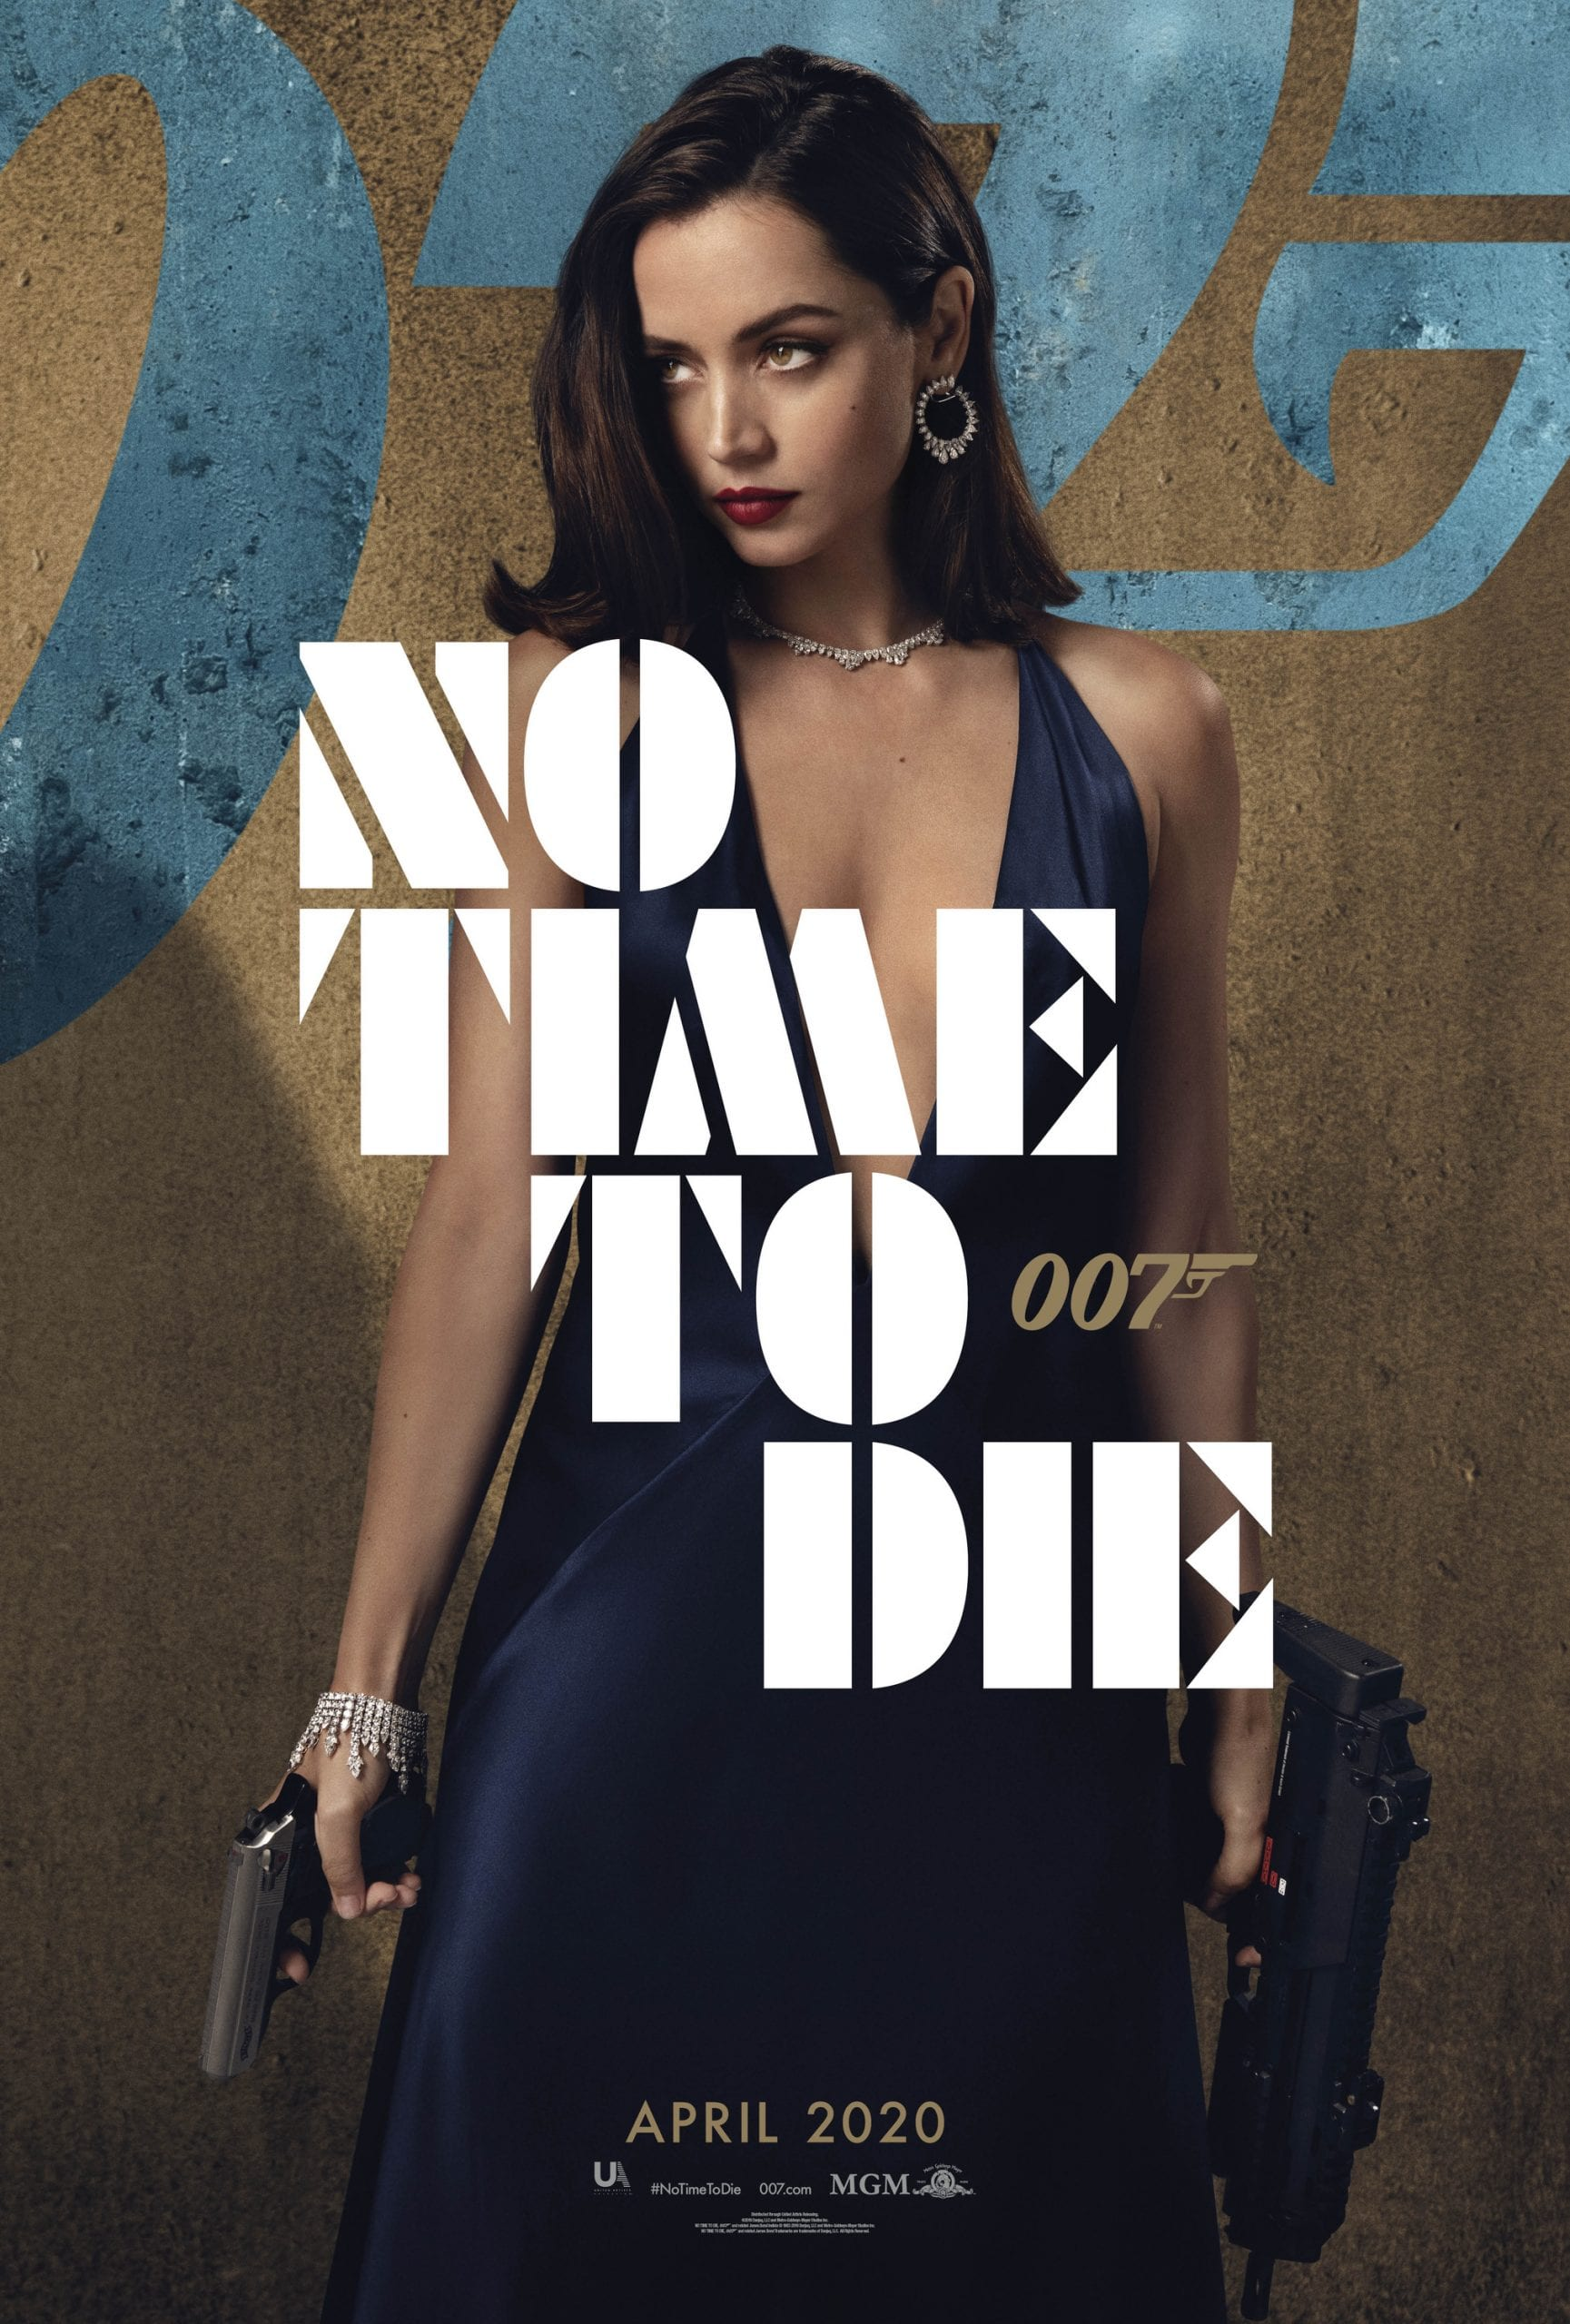 007 No Time To Die Bond 25 Character Posters Ana de Armas as Paloma